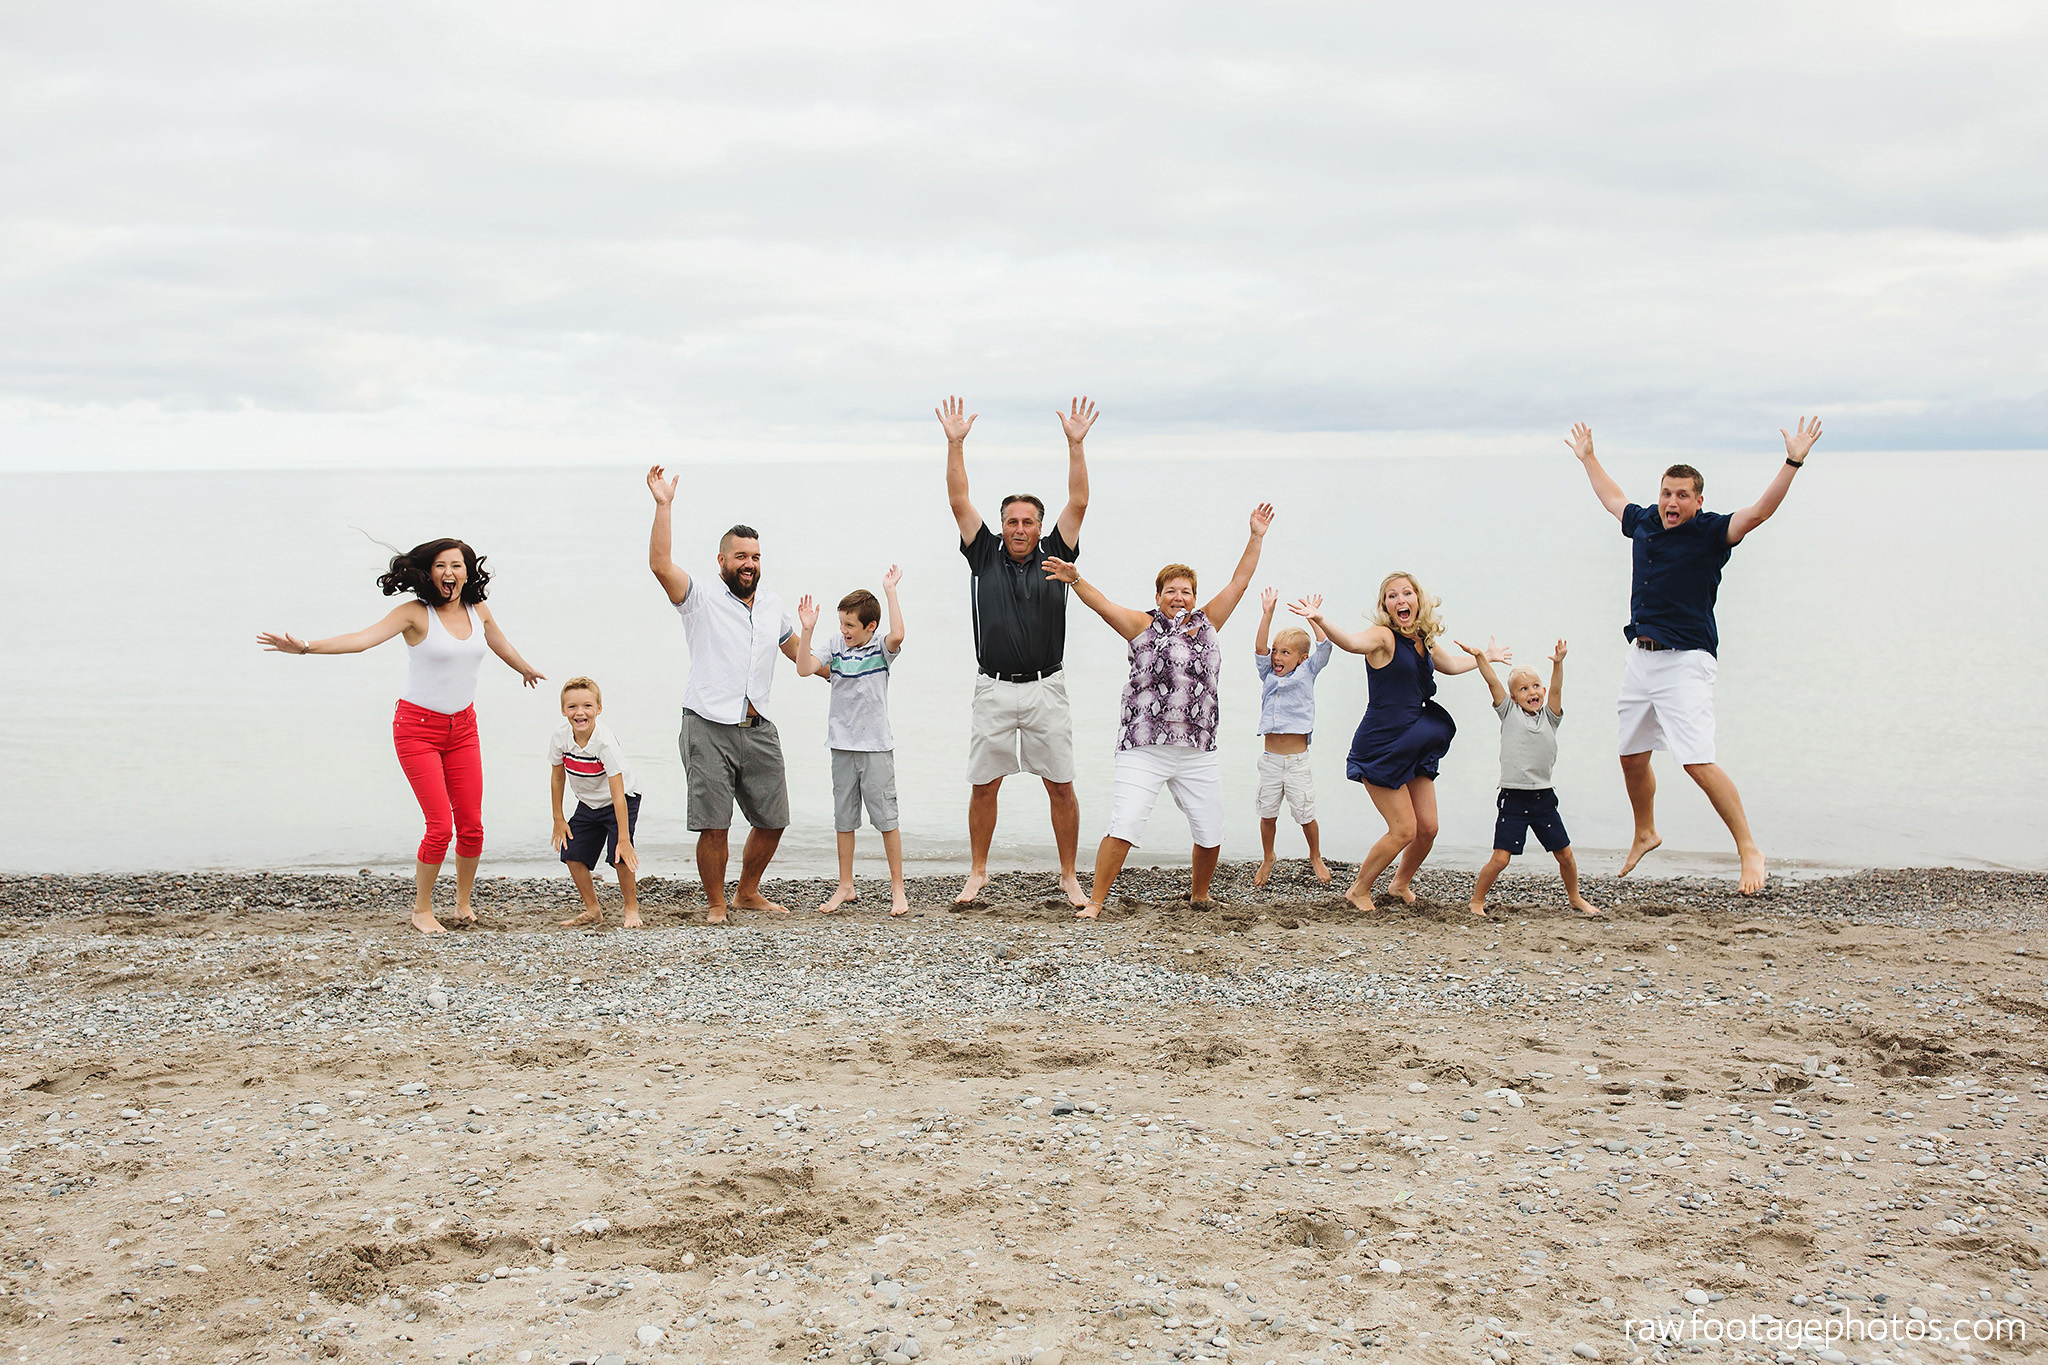 london_ontario_family_photographer-beach_minis-port_stanley_beach-raw_footage_photography068.jpg